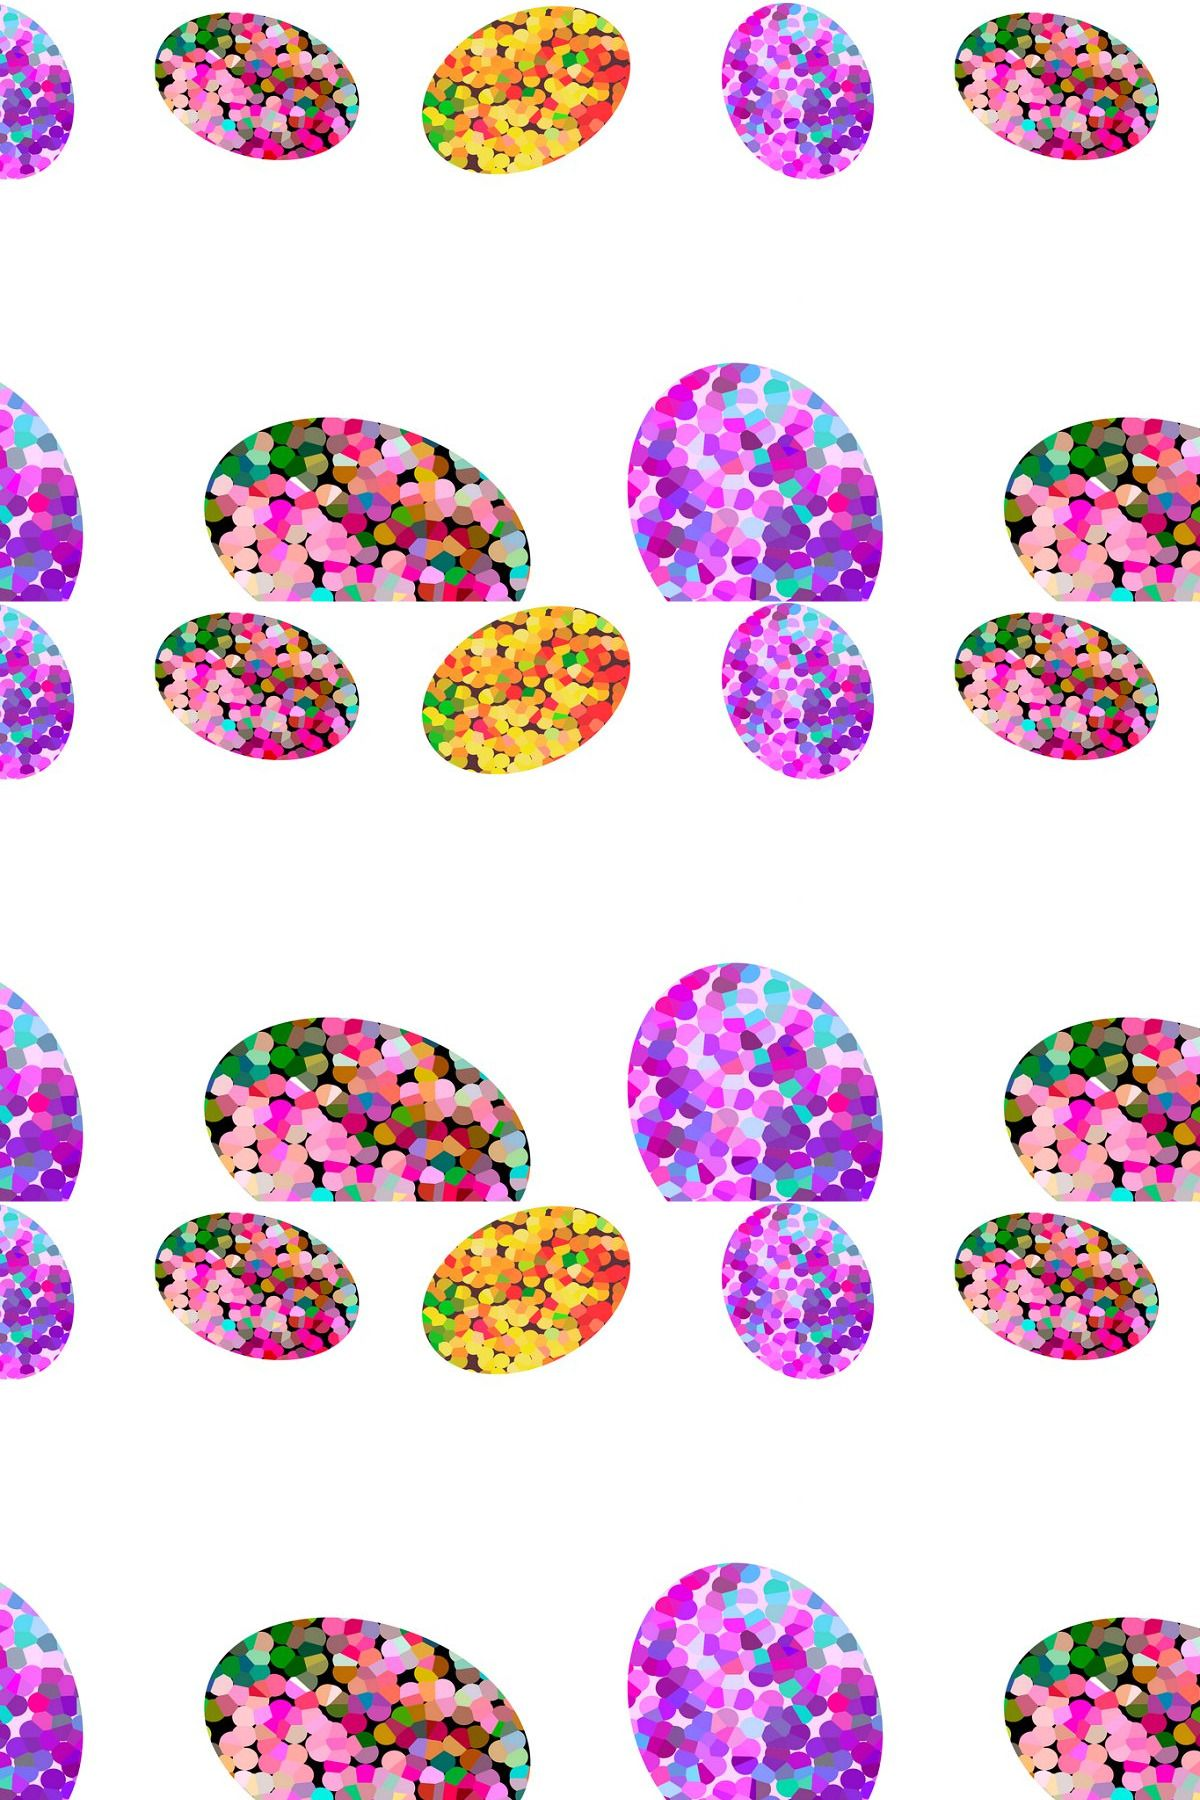 Colorful Easter Eggs Bordure In